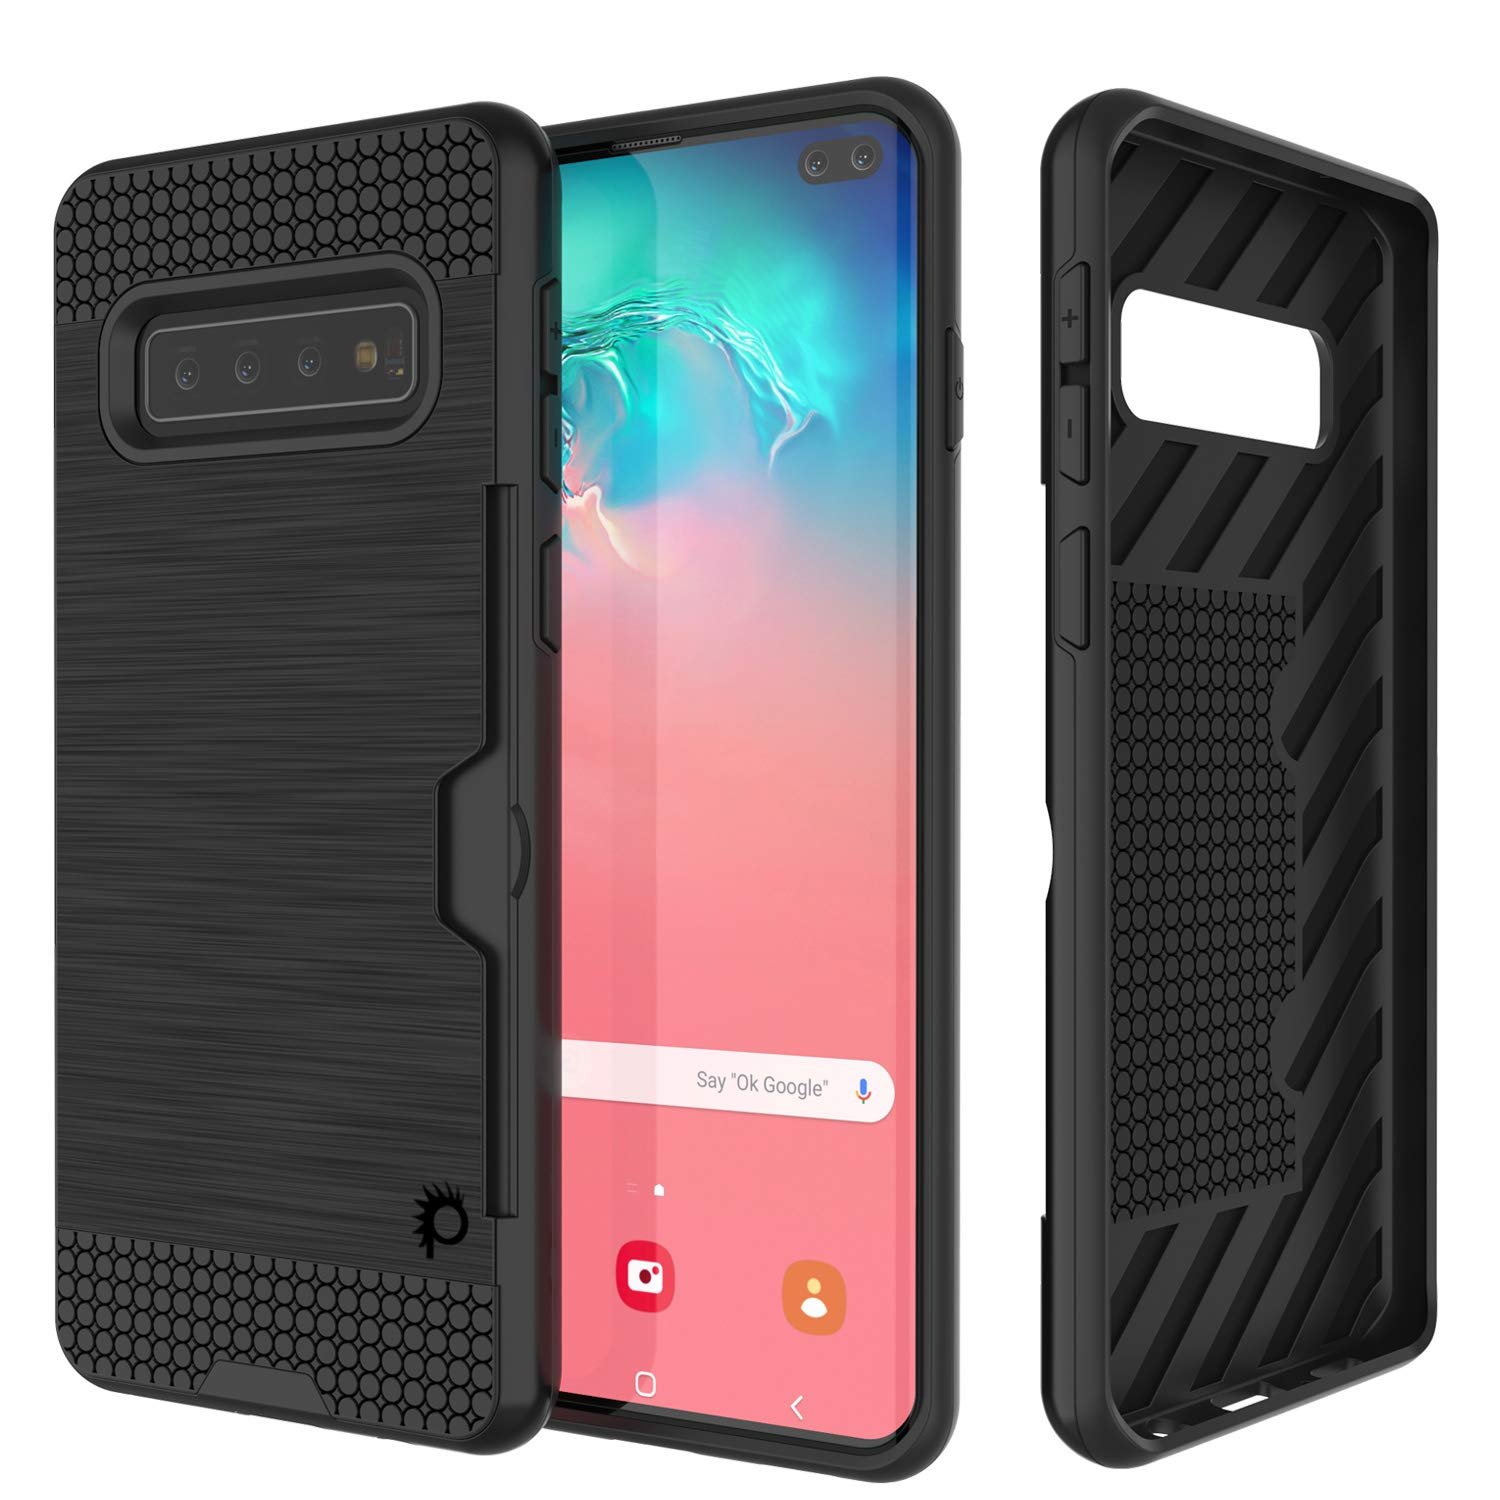 Galaxy S10+ Plus  Case, PUNKcase [SLOT Series] [Slim Fit] Dual-Layer Armor Cover w/Integrated Anti-Shock System, Credit Card Slot [Black]